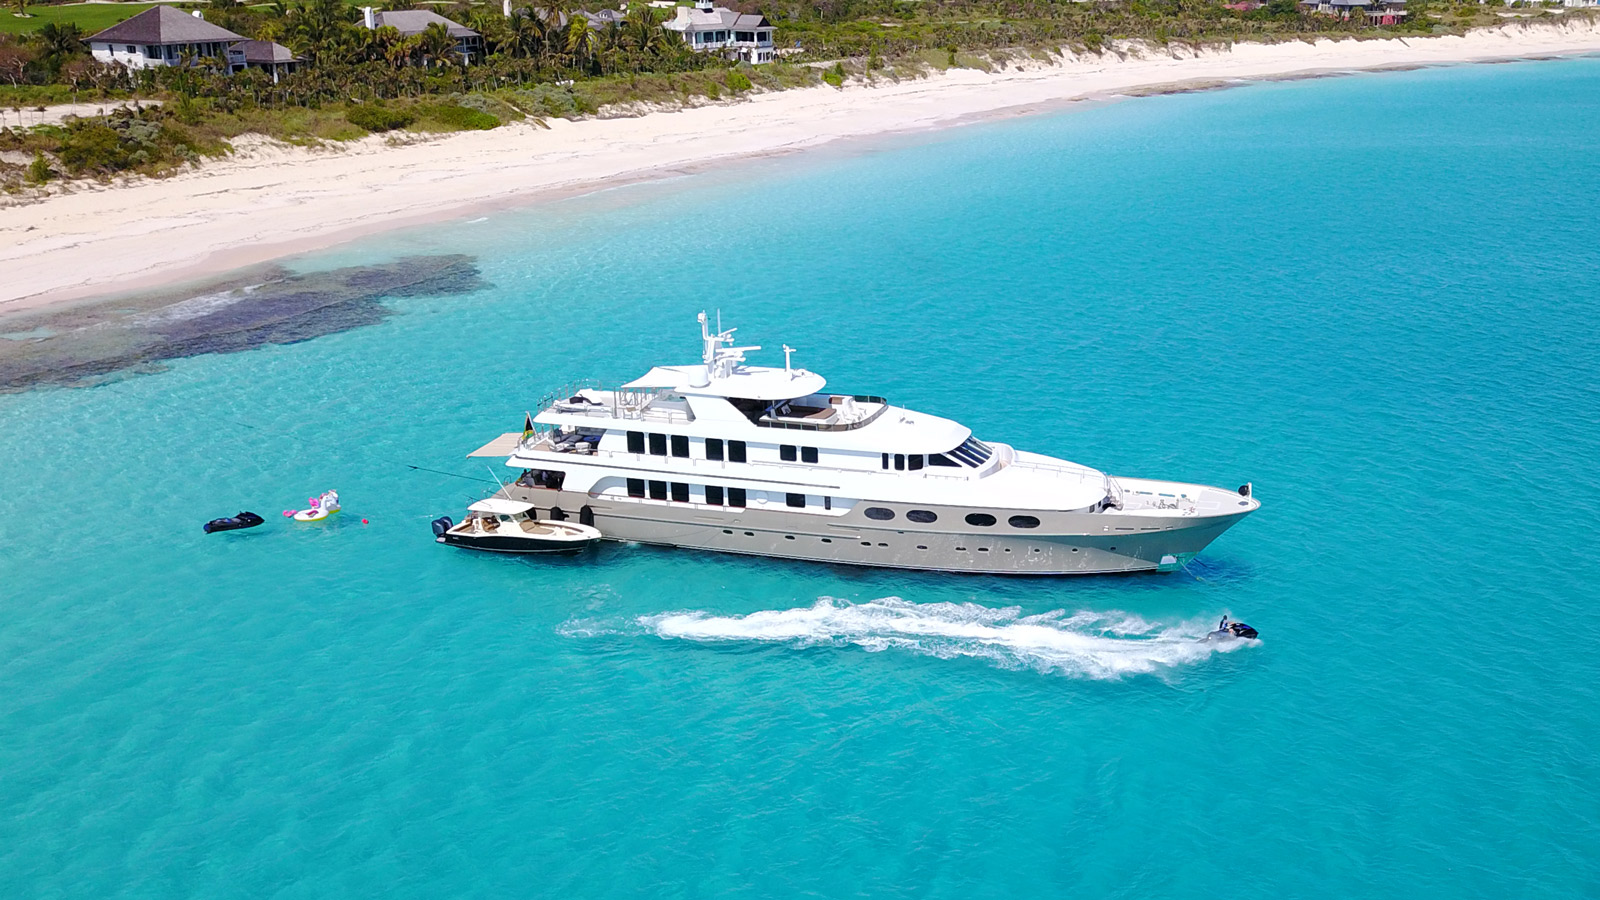 LOON Yacht for Charter - IYC